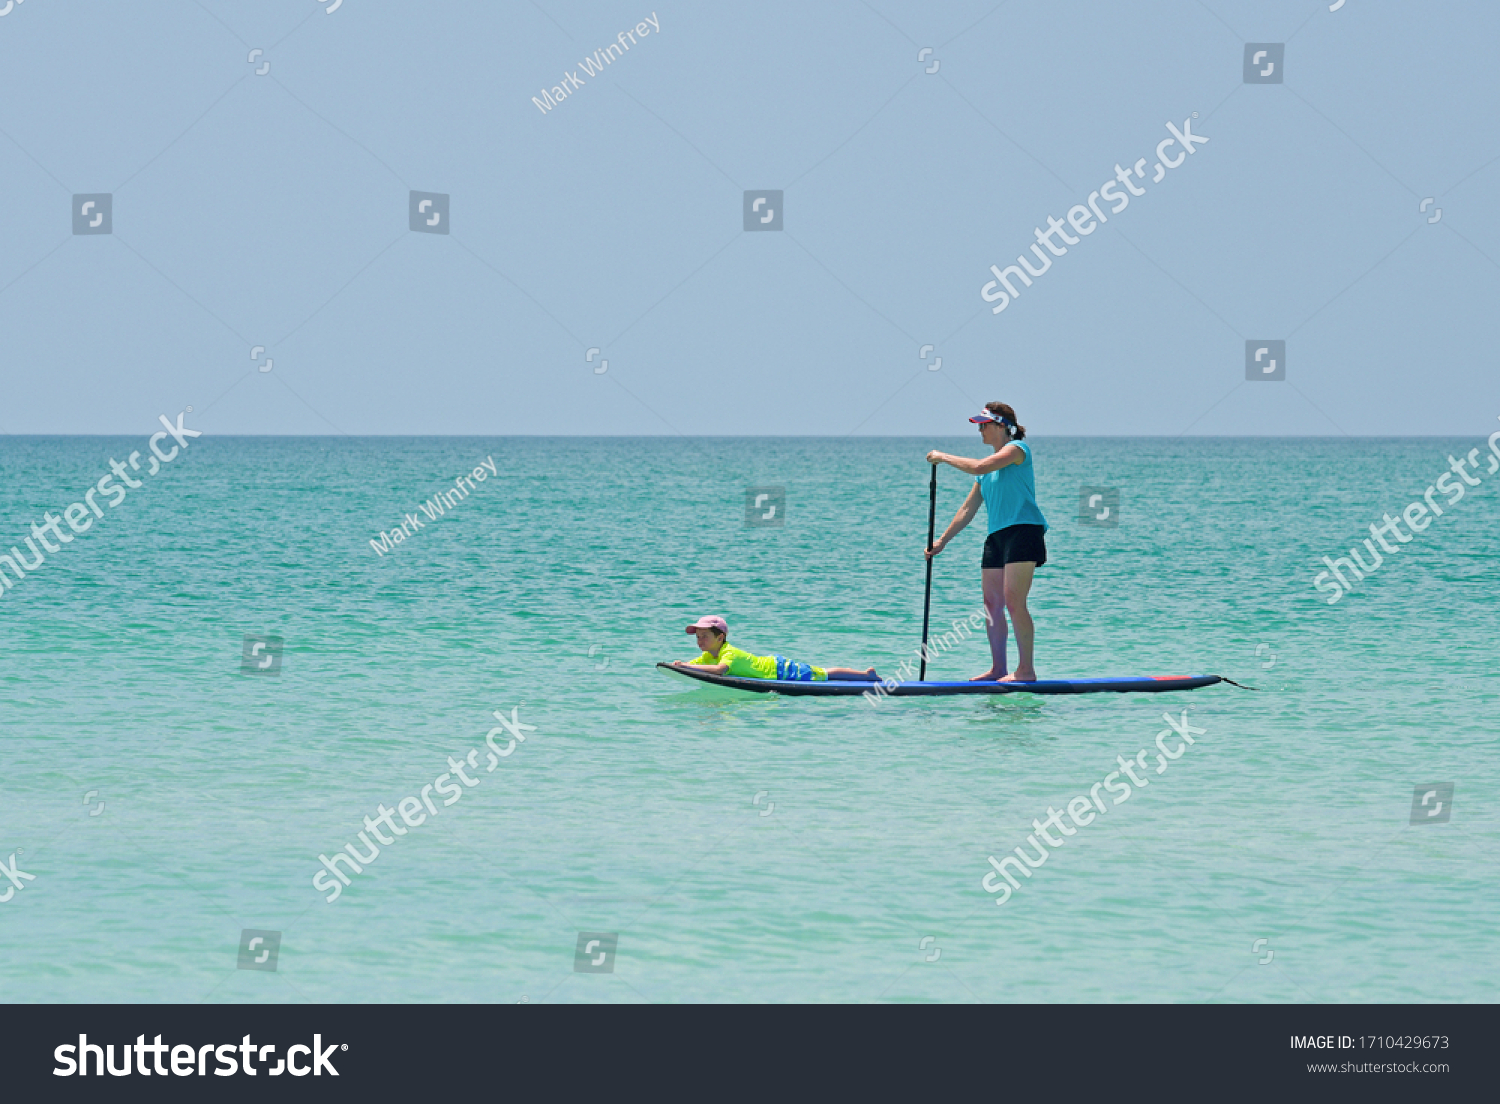 HOLMES BEACH, ANNA MARIA ISLAND, FL - APRIL 30, 2018: A Mom and her Young Son on a Paddleboard in the shallow water of the Gulf of Mexico enjoying a Beautiful Summer Day.